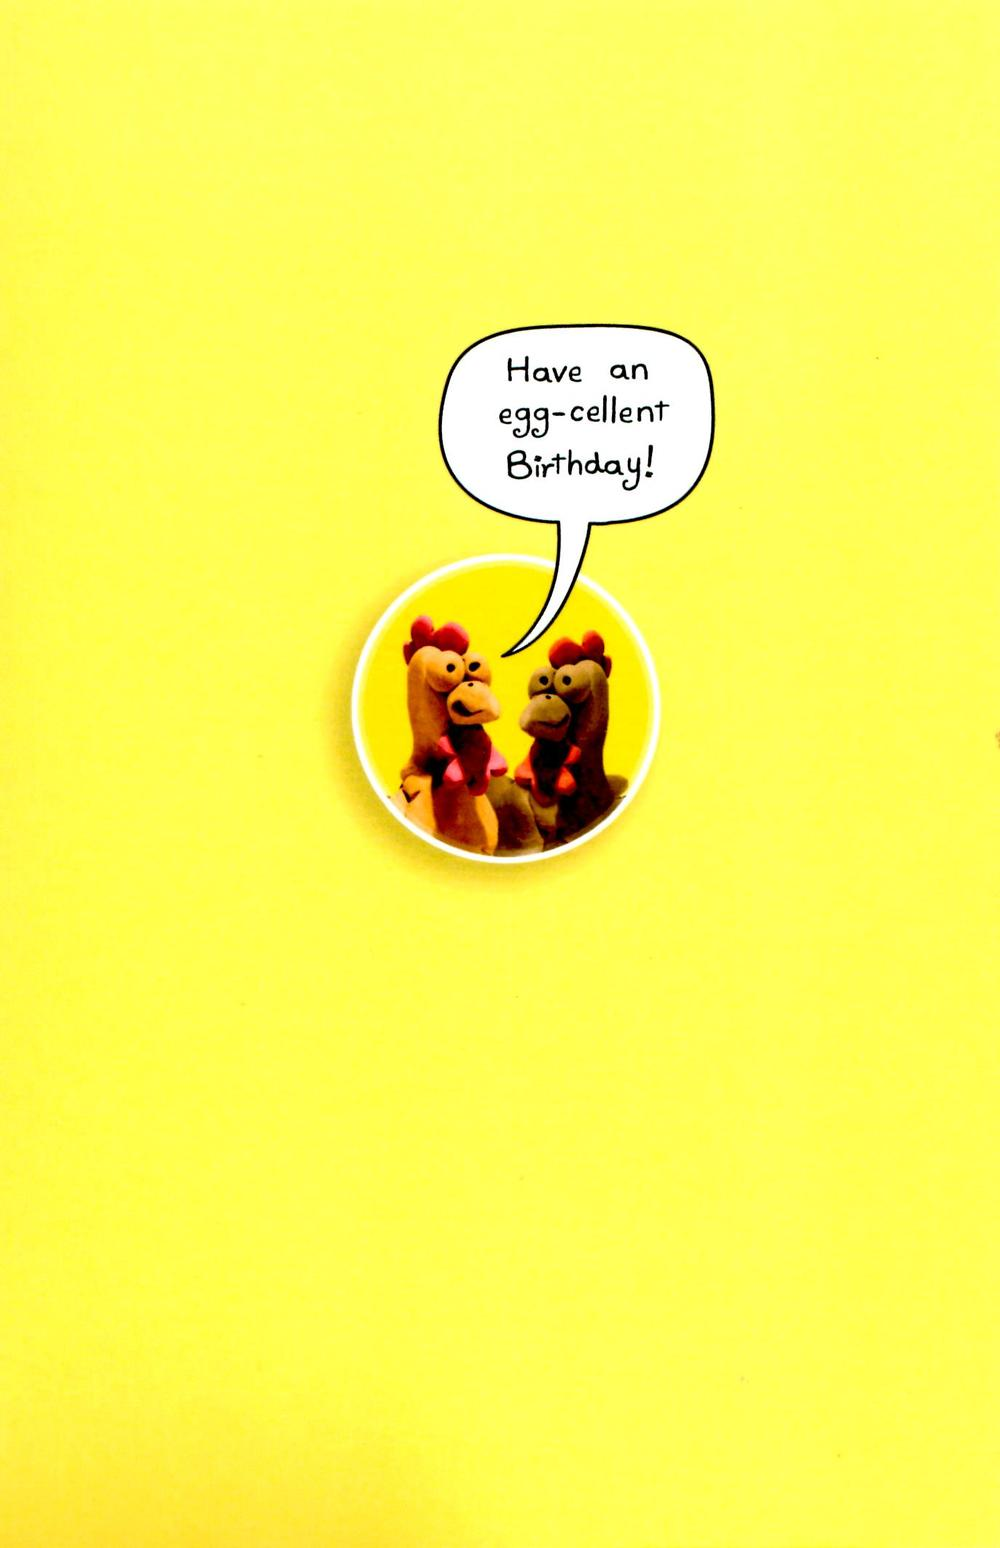 Funny Sneezing Chicken Birthday Card Cards Love Kates